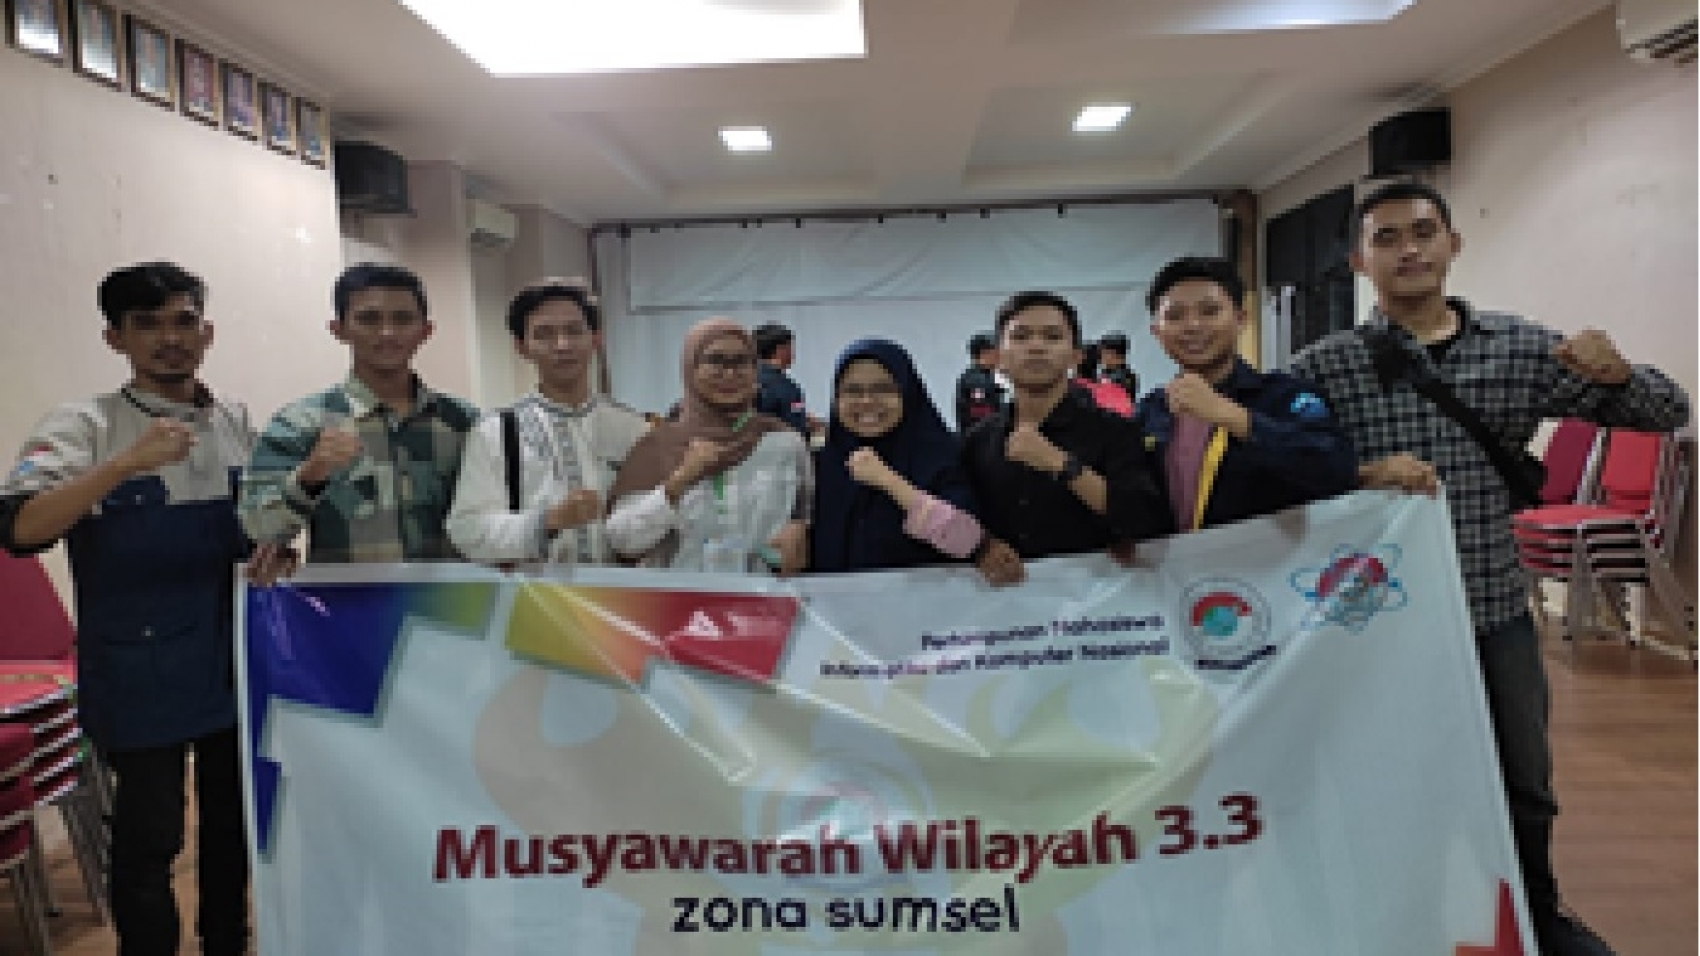 Musywil 3.3.